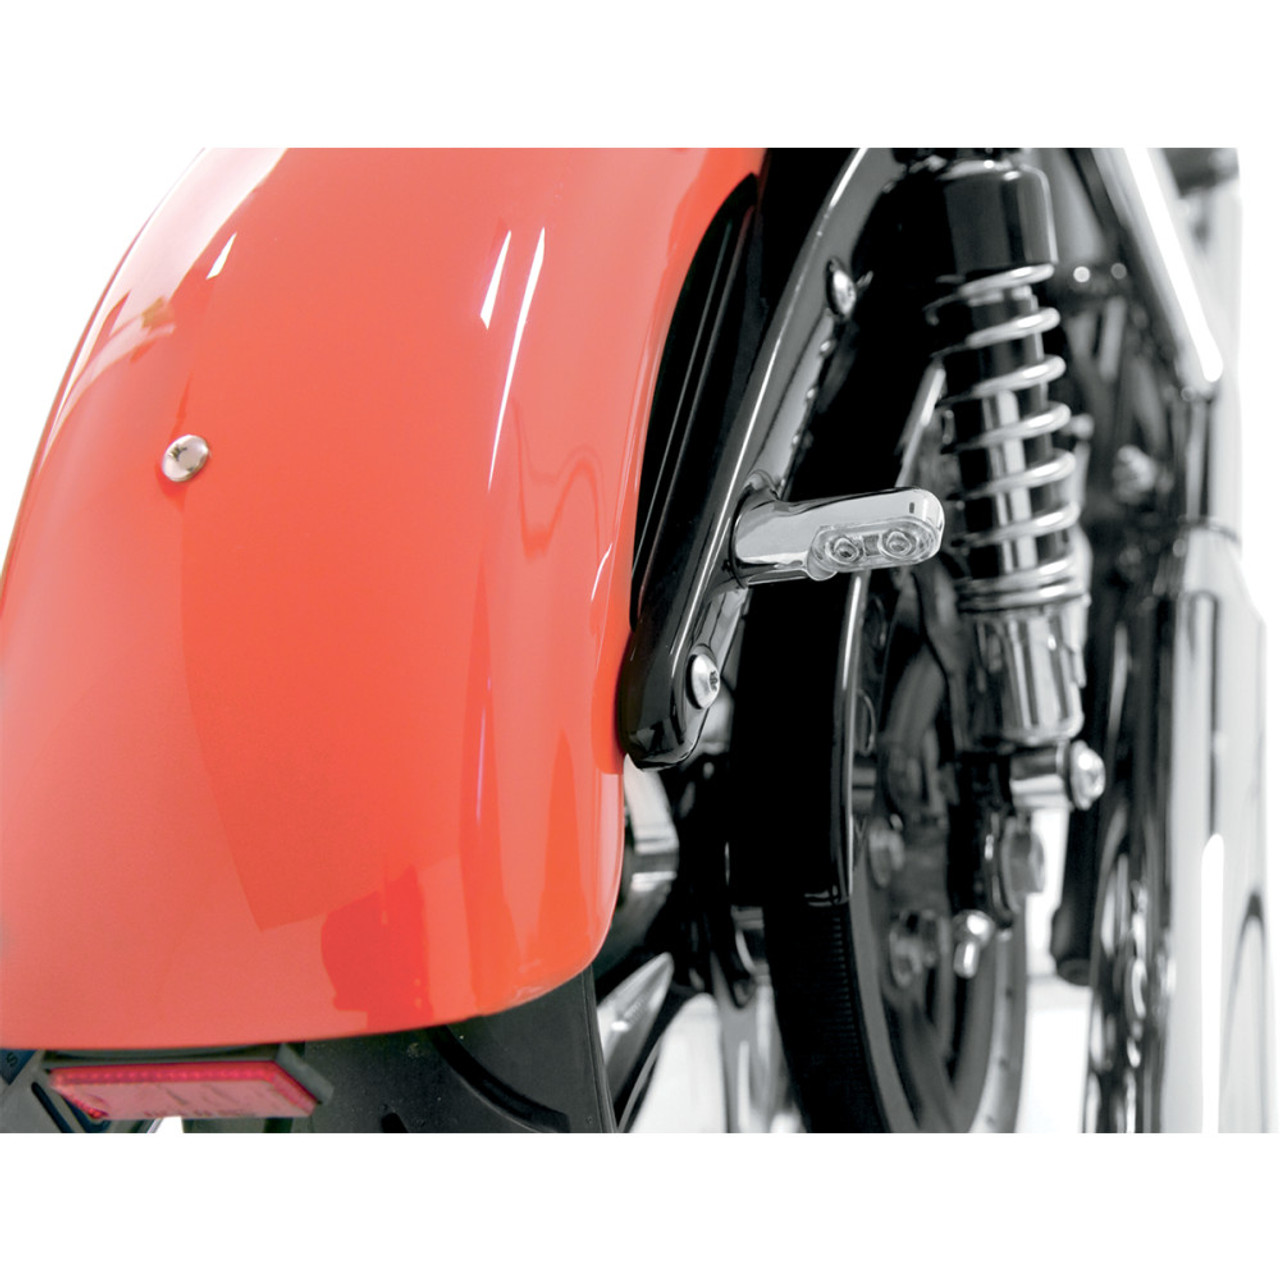 Arlen Ness Power LED Bolt-On Rear Turn Signals for Harley - Chrome